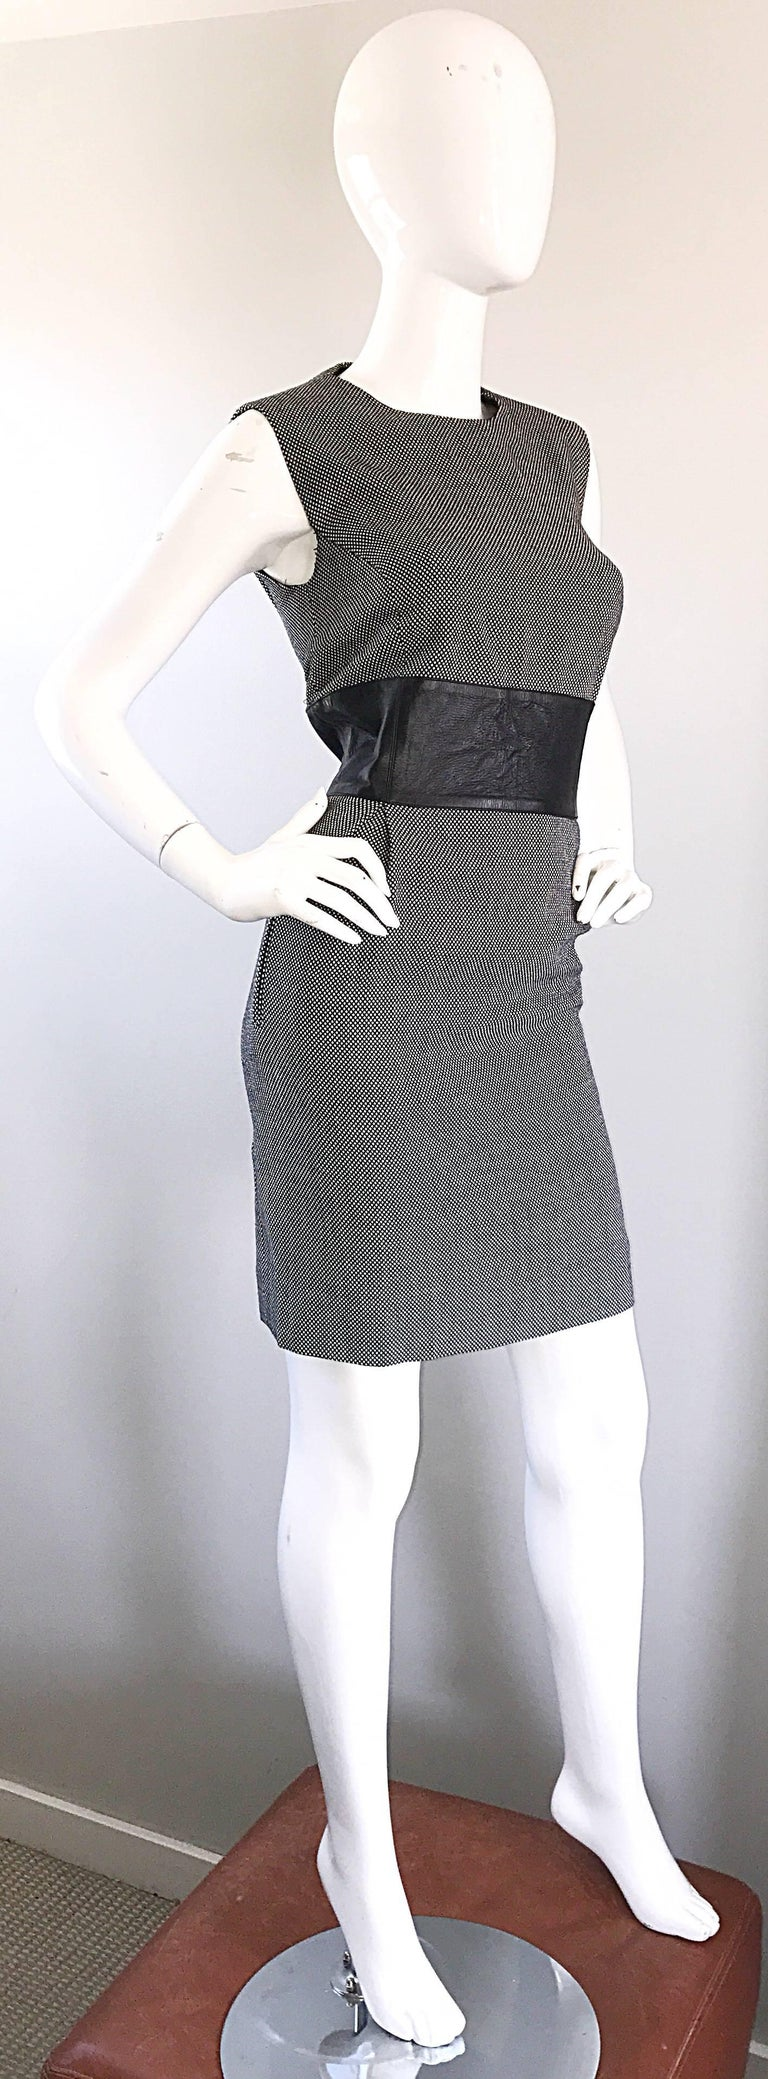 New Michael Kors Collection Size 14 Black and White Wool + Leather Classic Dress In Excellent Condition For Sale In San Francisco, CA